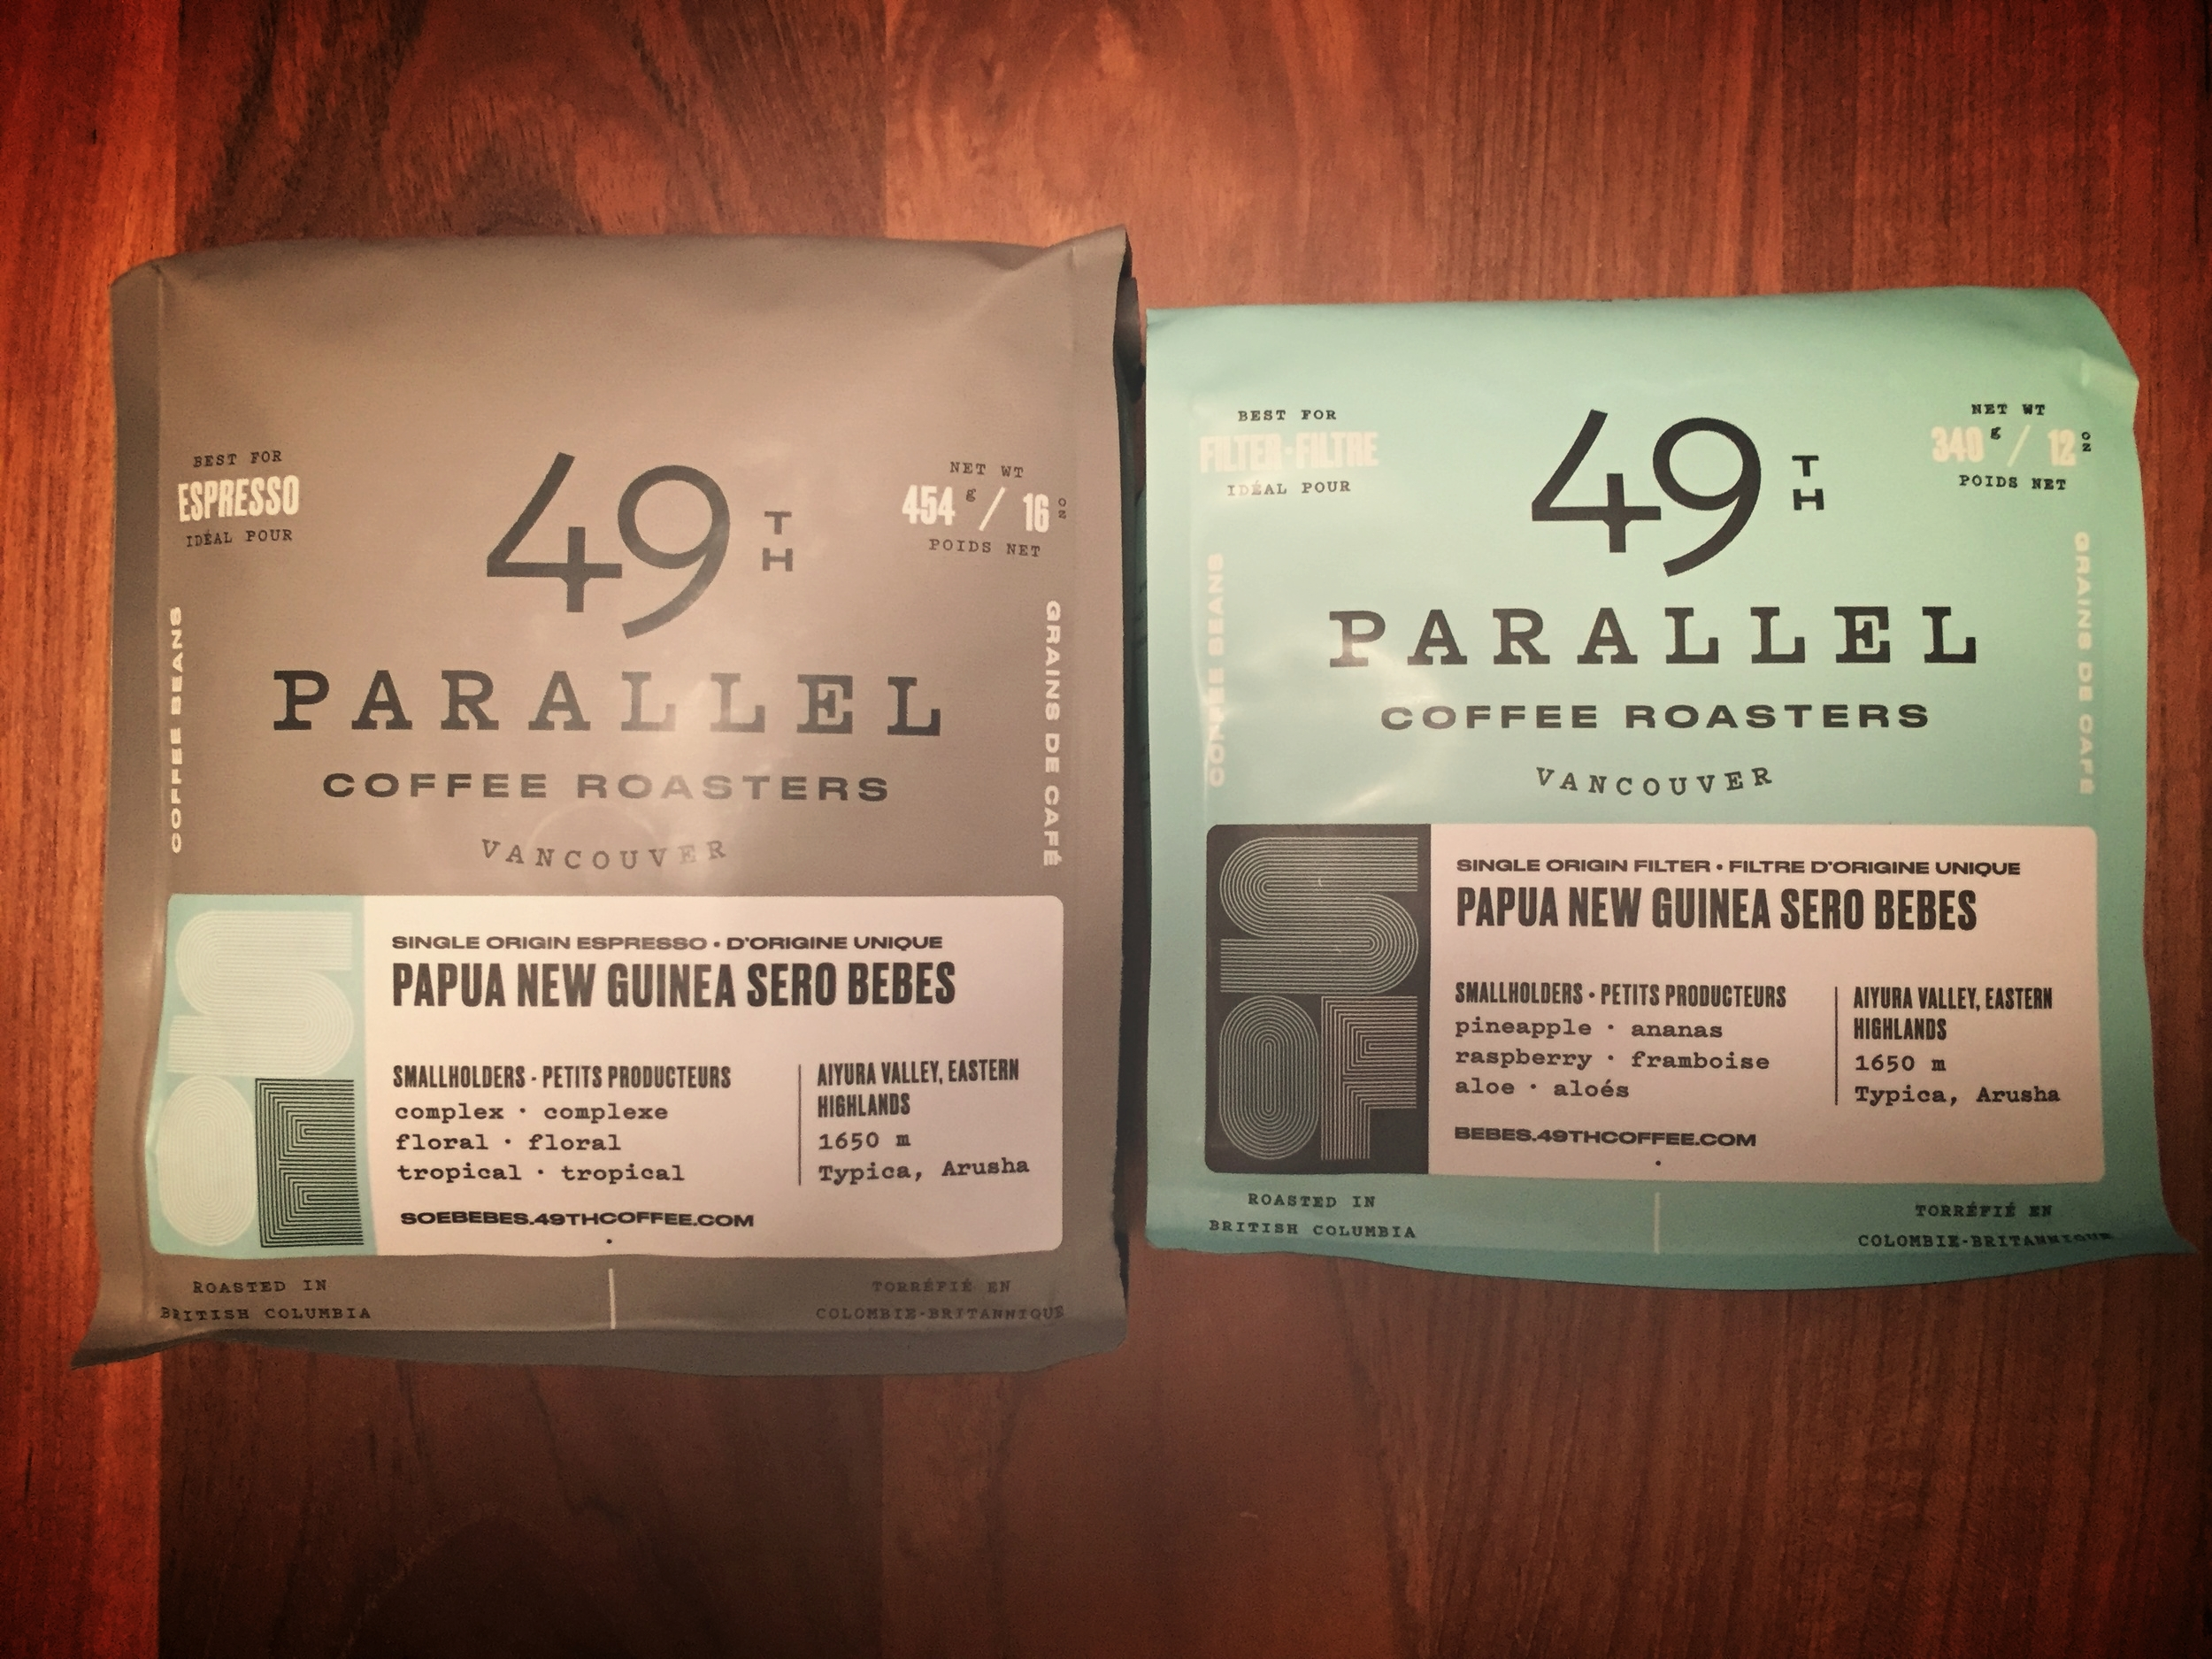 The same coffee roasted at two different levels/profiles.